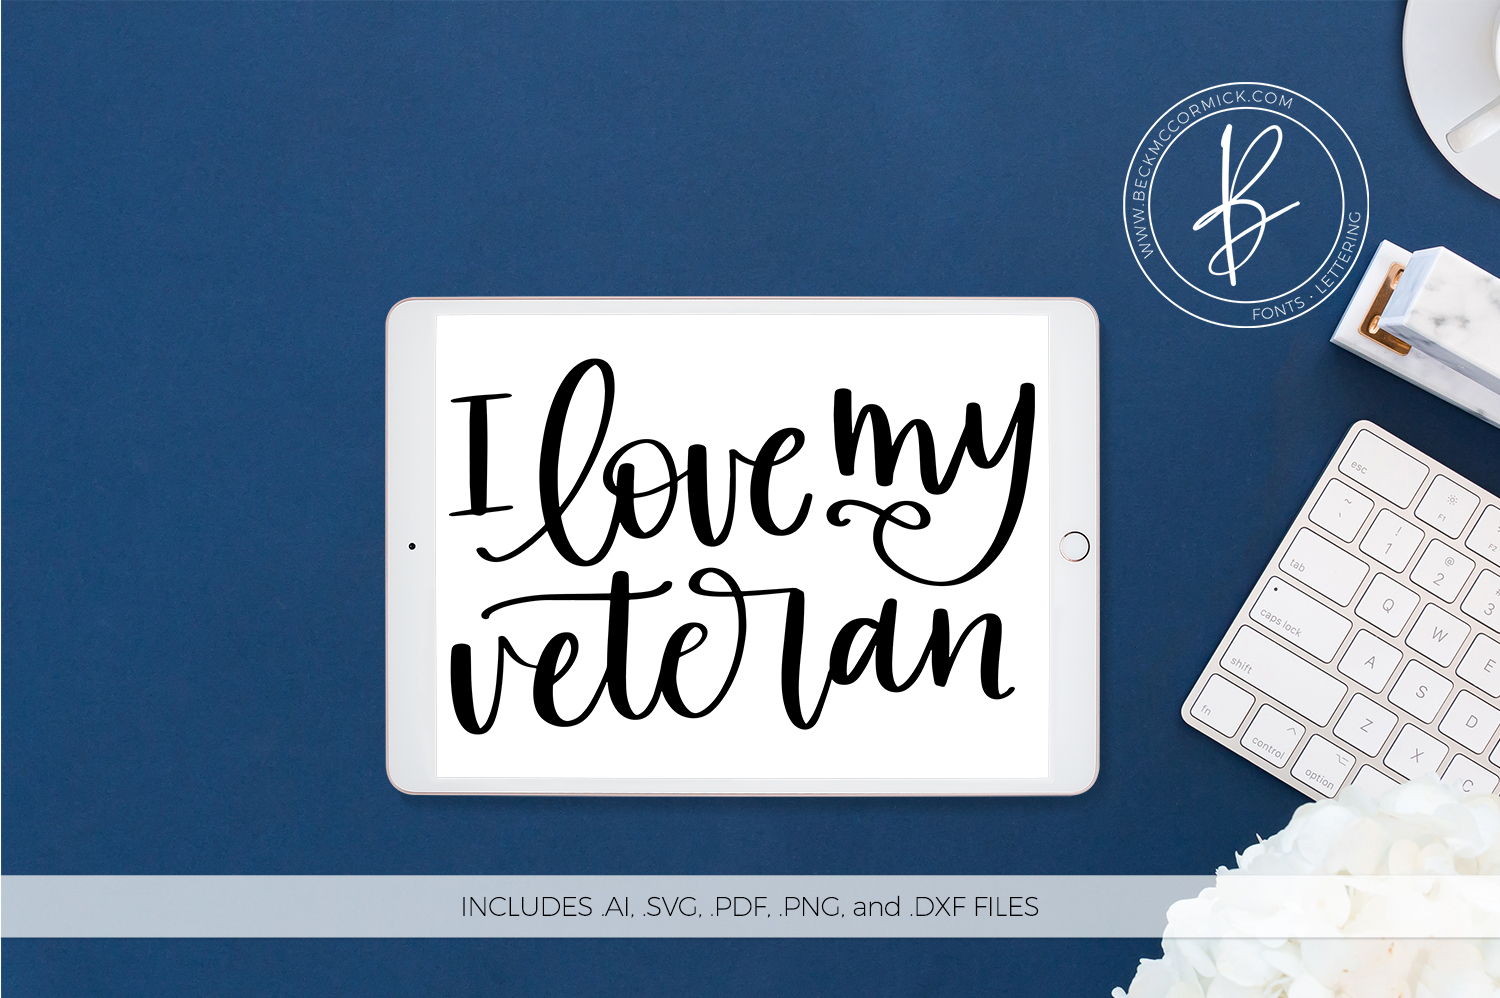 Download Free I Love My Veteran Graphic By Beckmccormick Creative Fabrica for Cricut Explore, Silhouette and other cutting machines.